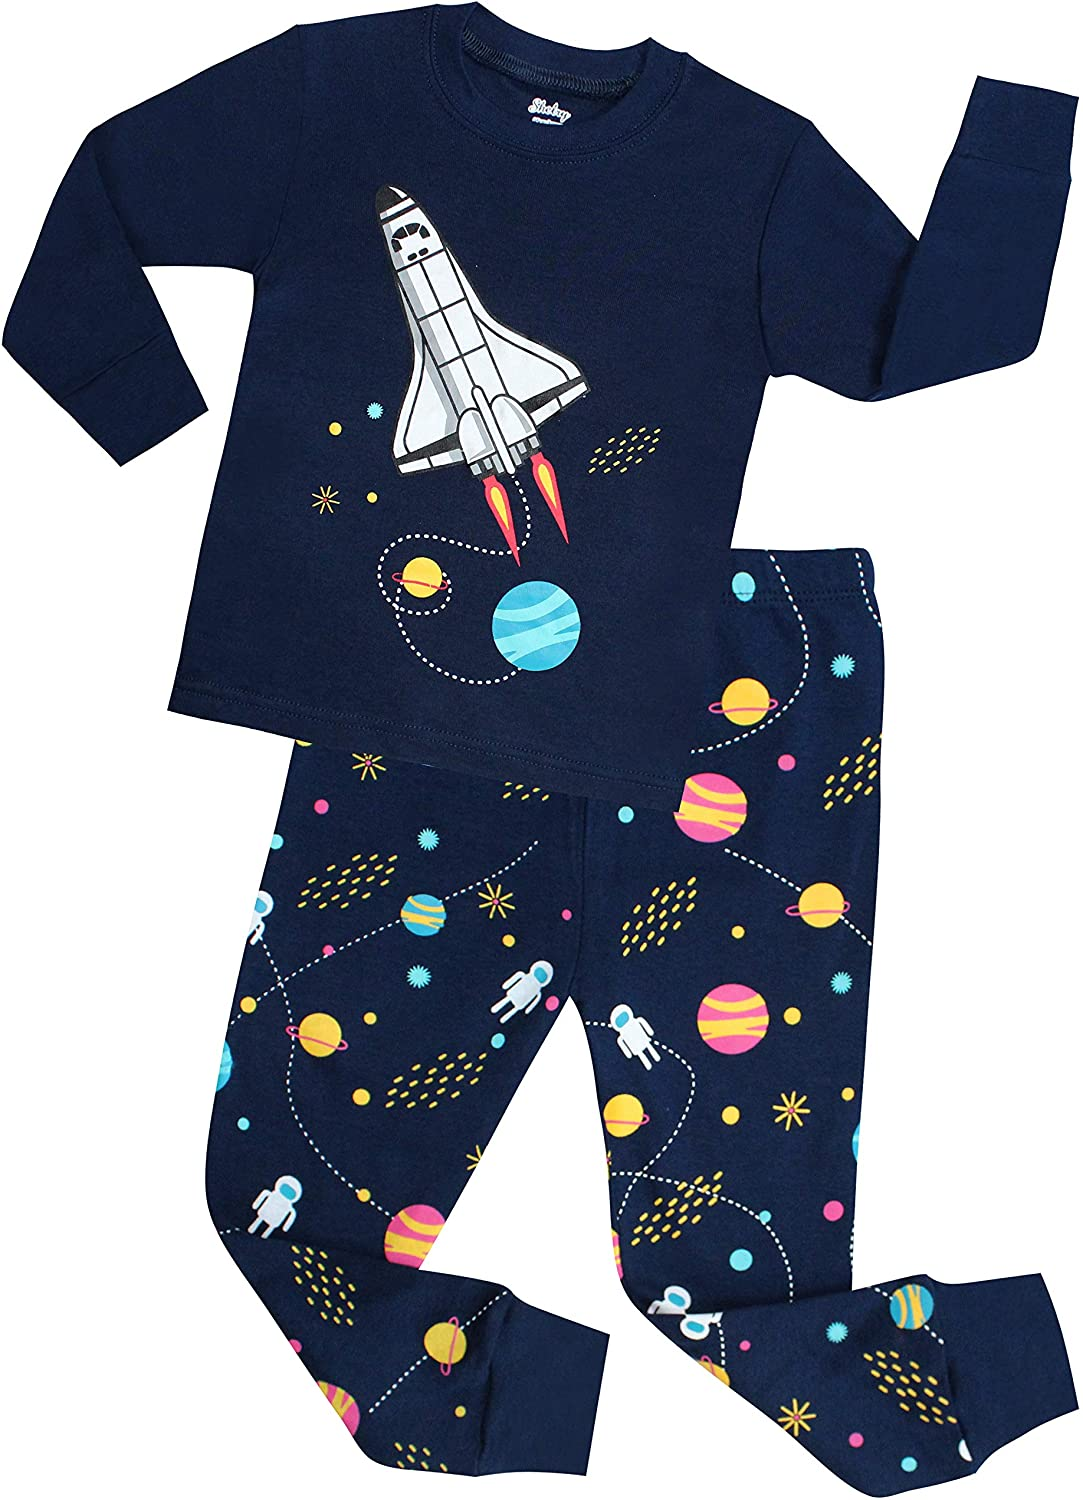 shelry Boys Rocket Pajamas Children Christmas Pants Set 100% Cotton Size 2-7 Years